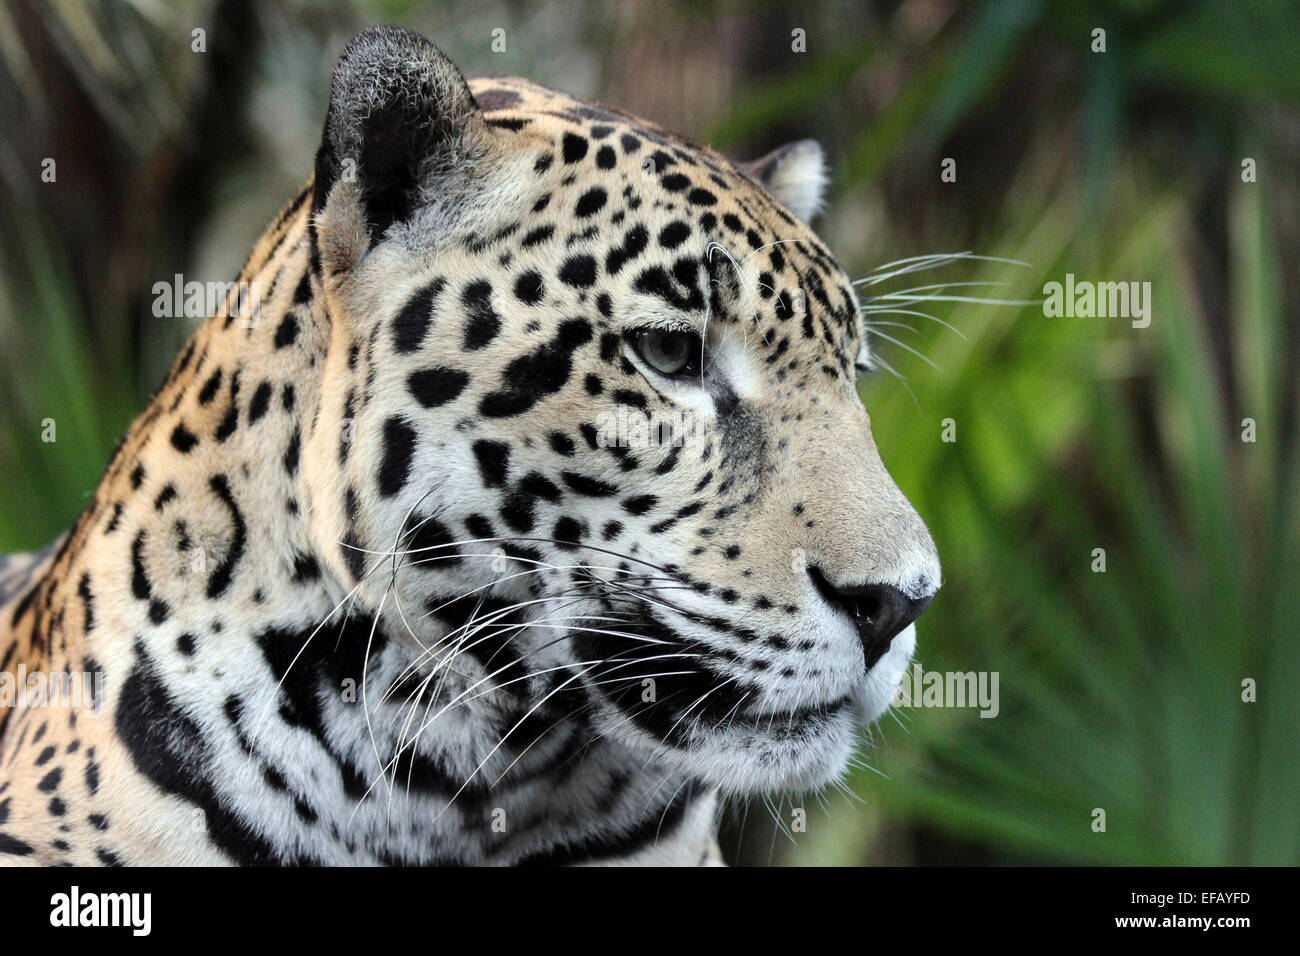 Jaguar Panthera onca - Stock Image